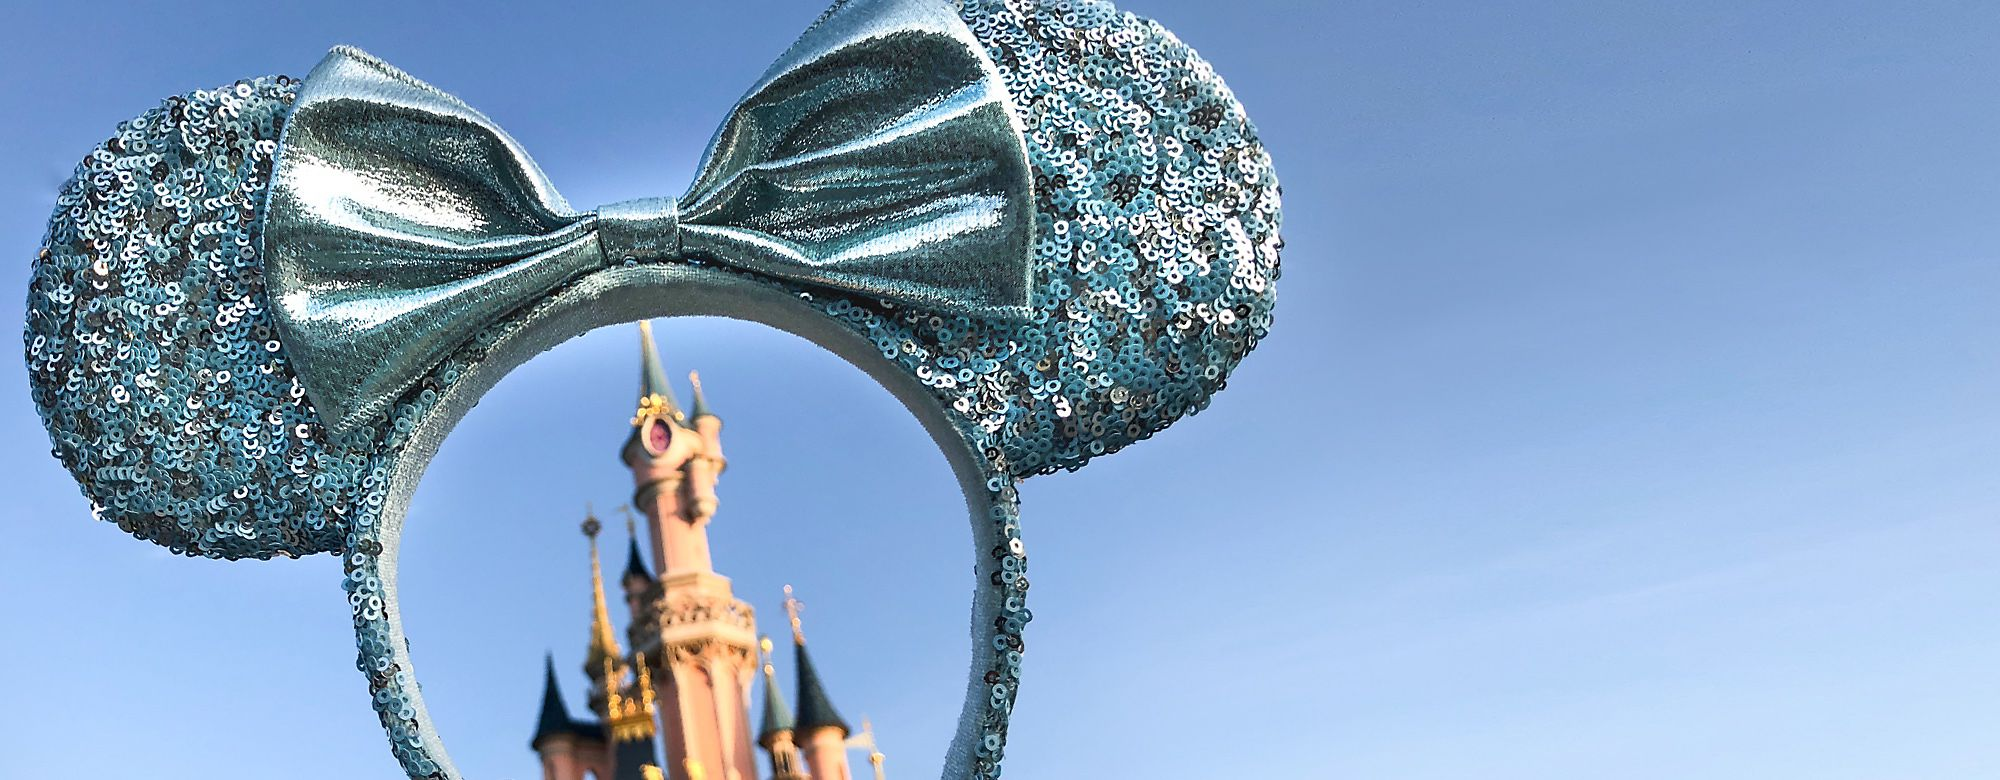 Disneyland Paris Unable to visit Disneyland Paris? Don't worry, we've got an exclusive range of products from the park including pins, collectibles and homeware. DISCOVER MORE